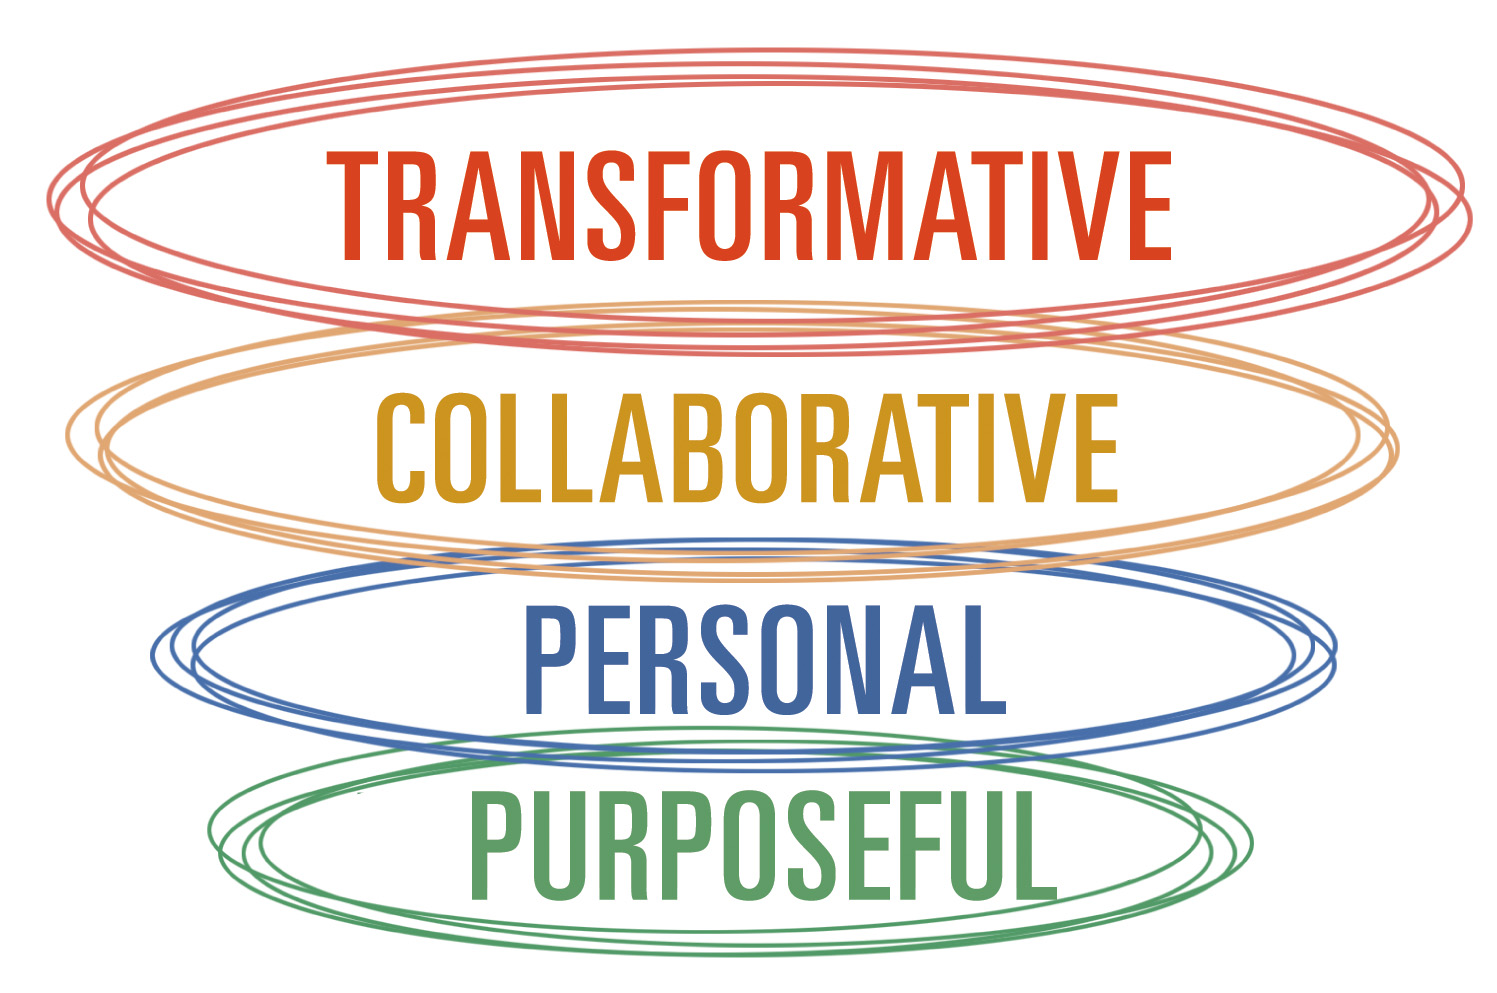 transformative, collaborative, personal, purposeful